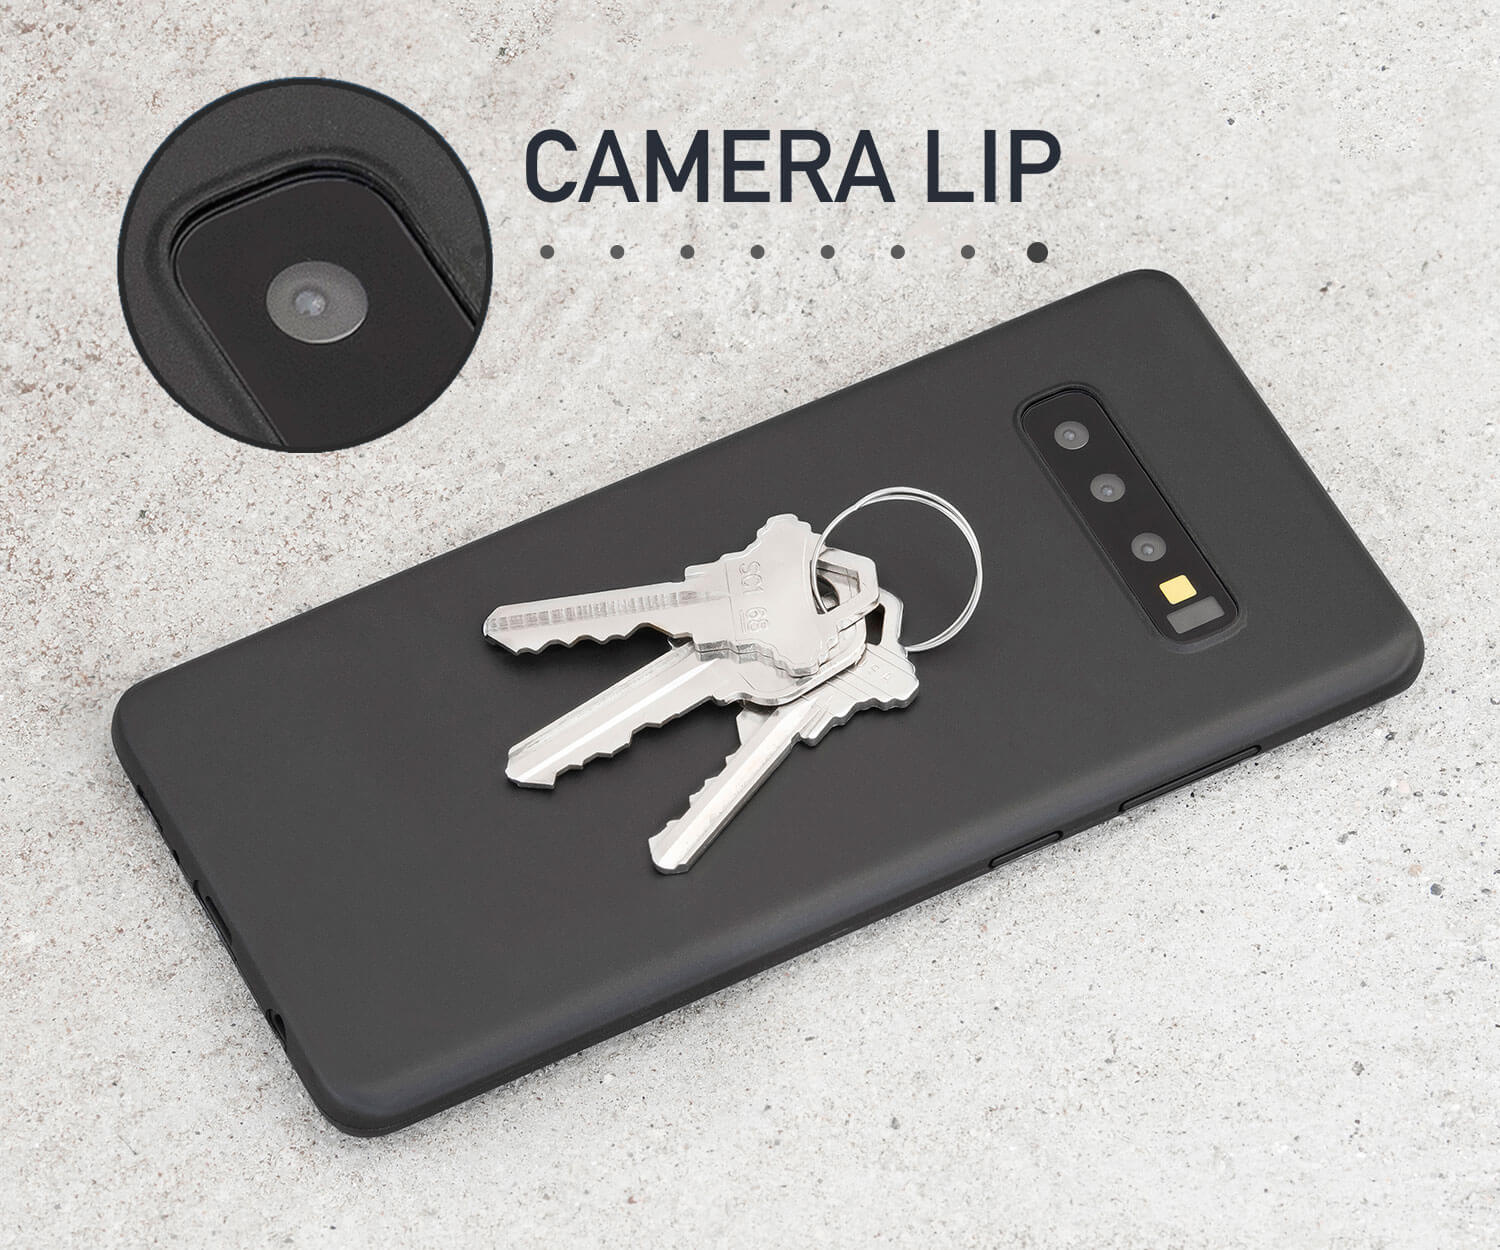 Thin black Galaxy S10 case that adds camera and scratch protection